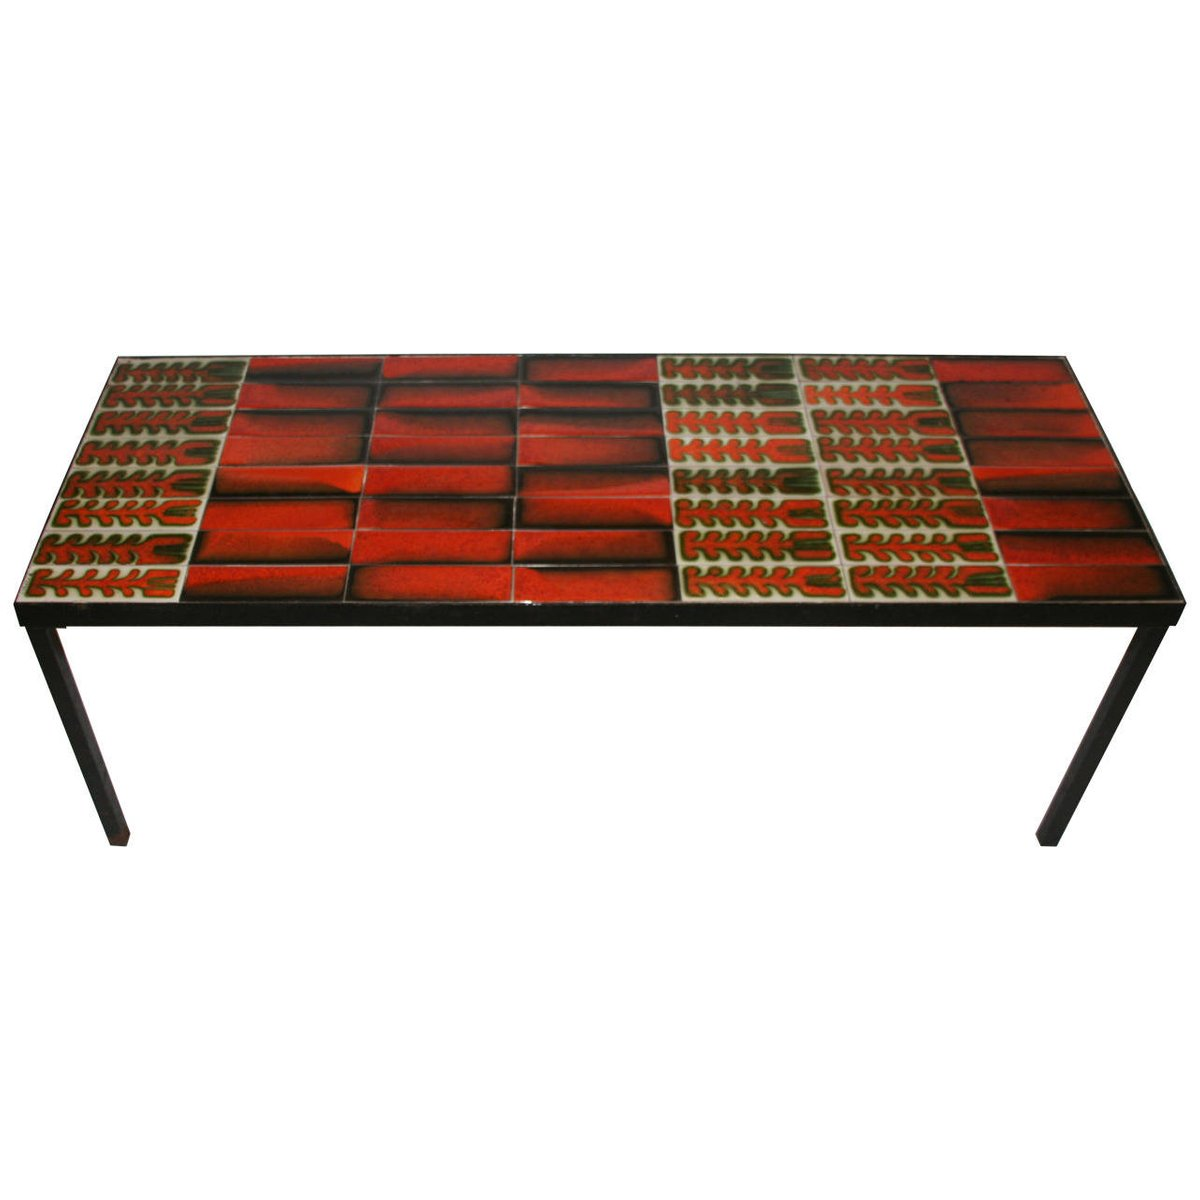 ceramic coffee table by roger capron 1960s for sale at pamono. Black Bedroom Furniture Sets. Home Design Ideas